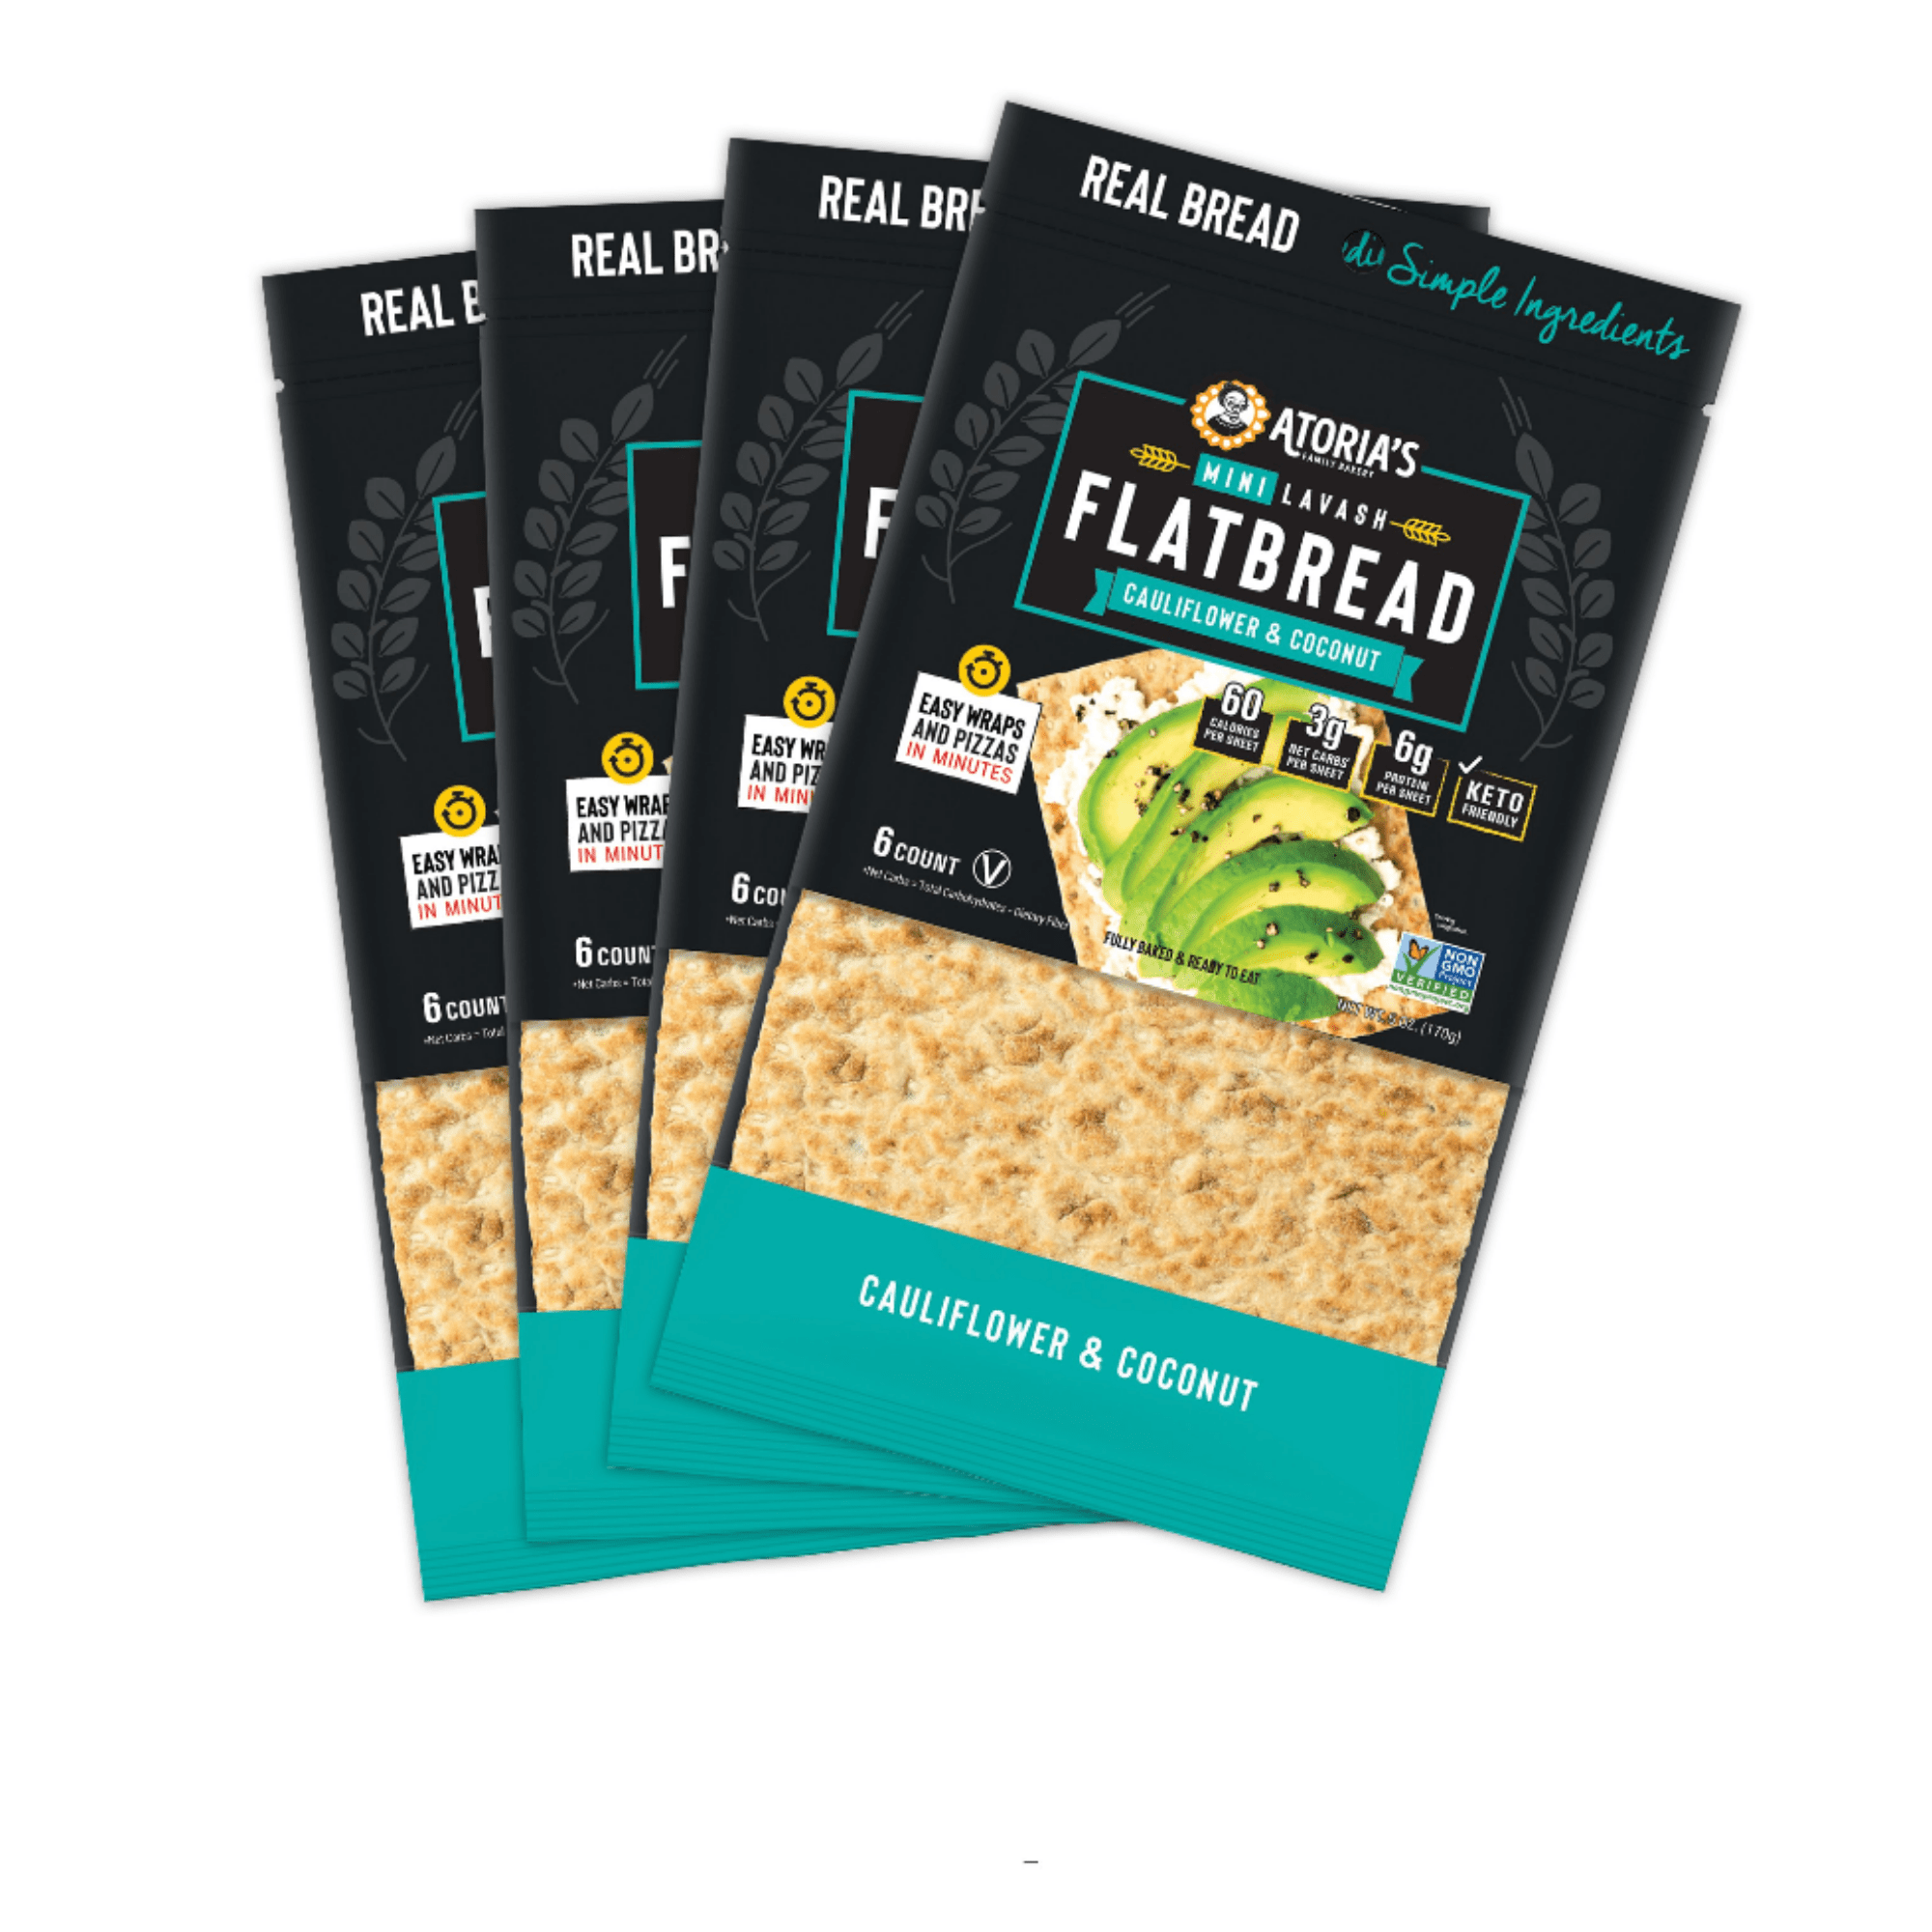 Atoria's Family Bakery Mini Lavash Flatbread Cauliflower & Coconut. Easy wraps and pizzas in minutes. 60 calories per sheet. 3g net carbs per sheet. 6g protein per sheet. Keto friendly. 6 count per package. Fully baked and ready to eat.